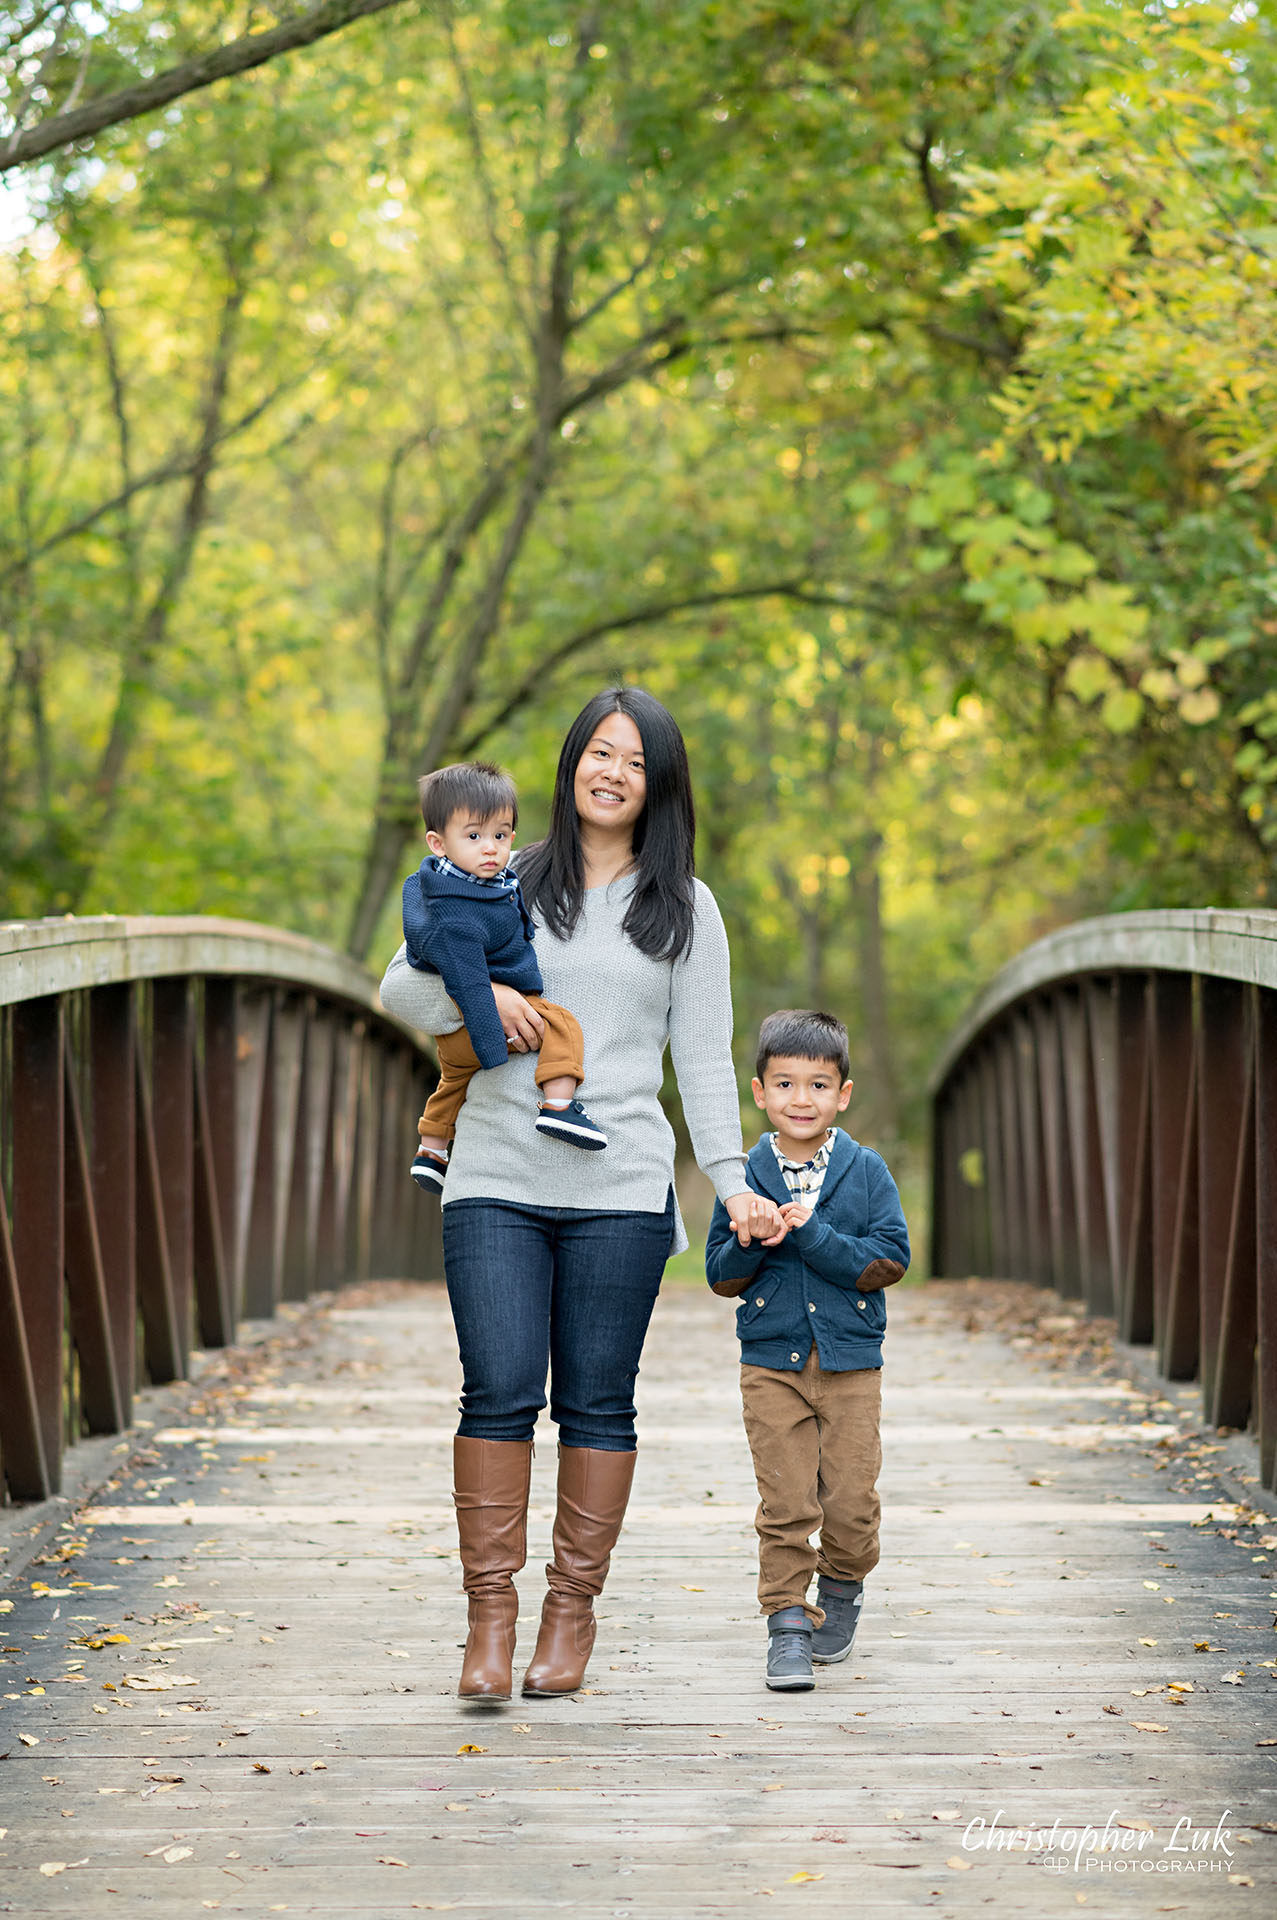 Christopher Luk Family Photographer Toronto Markham Unionville Autumn Fall Leaves Natural Candid Photojournalistic Sons Brothers Baby Boys Bridge Mother Mom Motherhood Holding Hands Walking